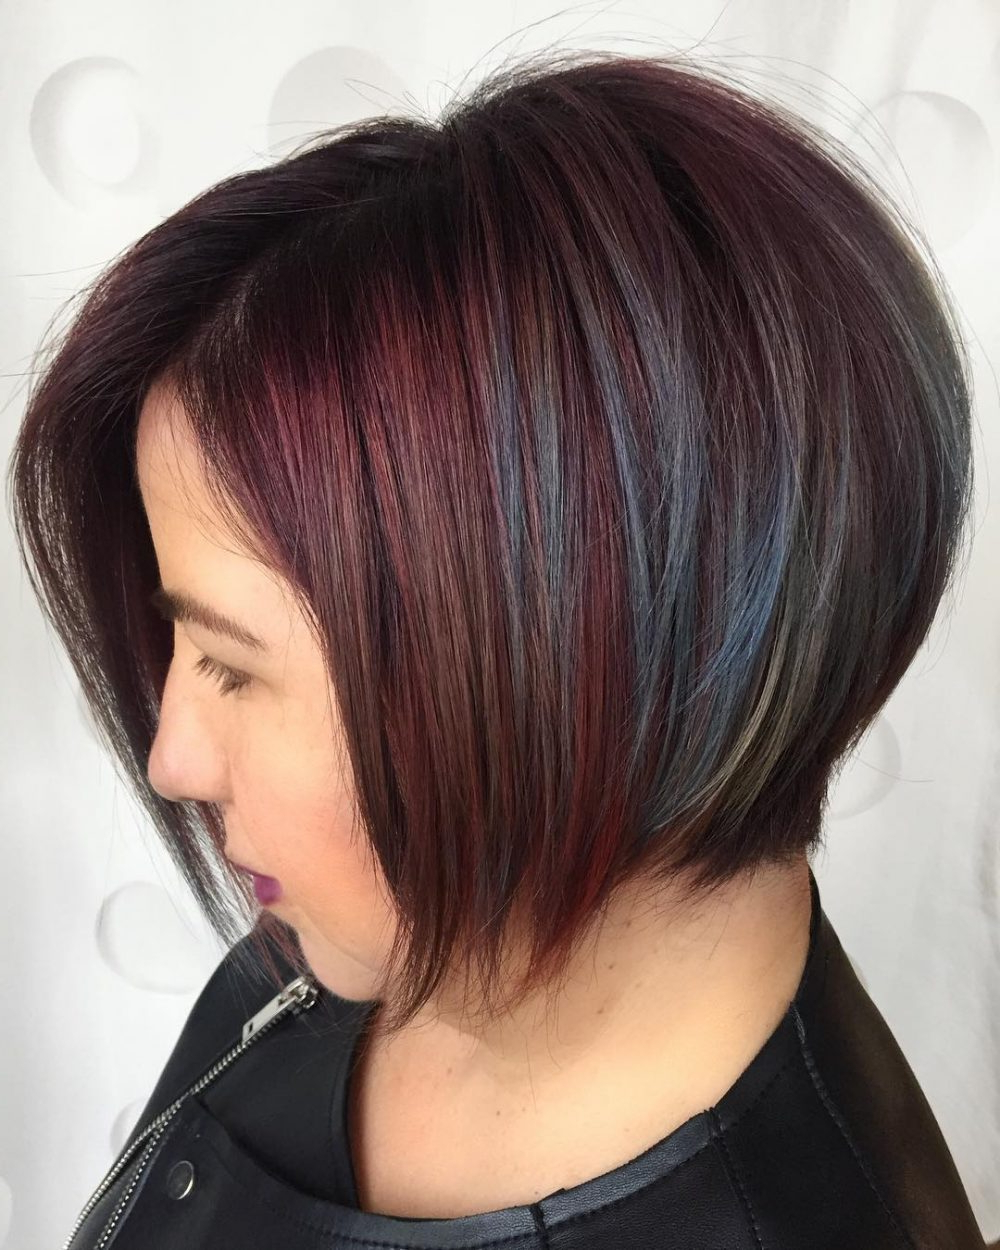 34 Greatest Short Haircuts And Hairstyles For Thick Hair For 2018 Inside Short Haircuts For Wavy Thick Hair (View 6 of 25)